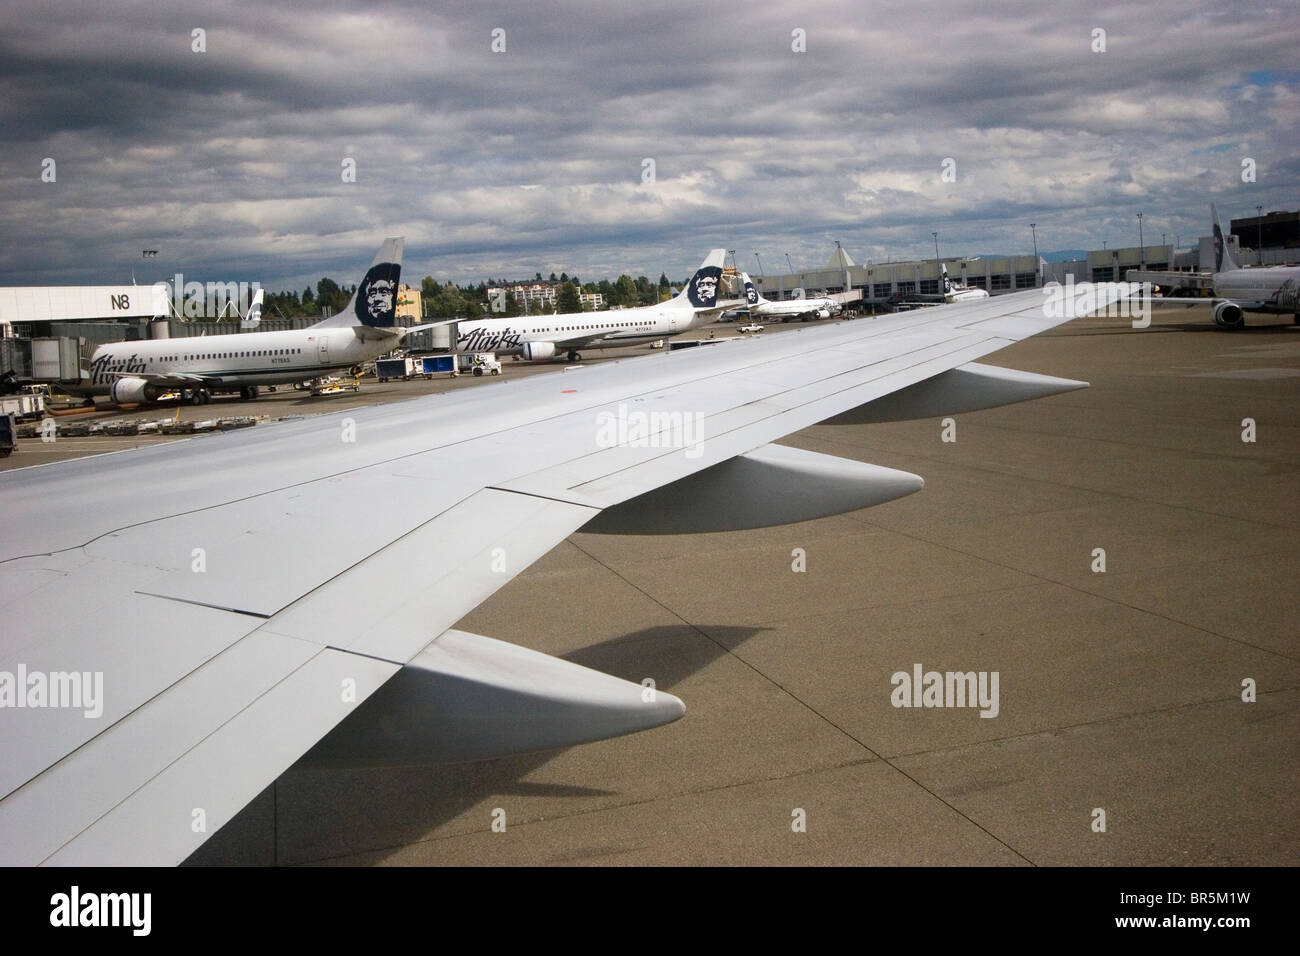 Airport tarmac, apron, with several Alaska Airlines airplanes above airplane wing of another aircraft, Seattle Washington - Stock Image